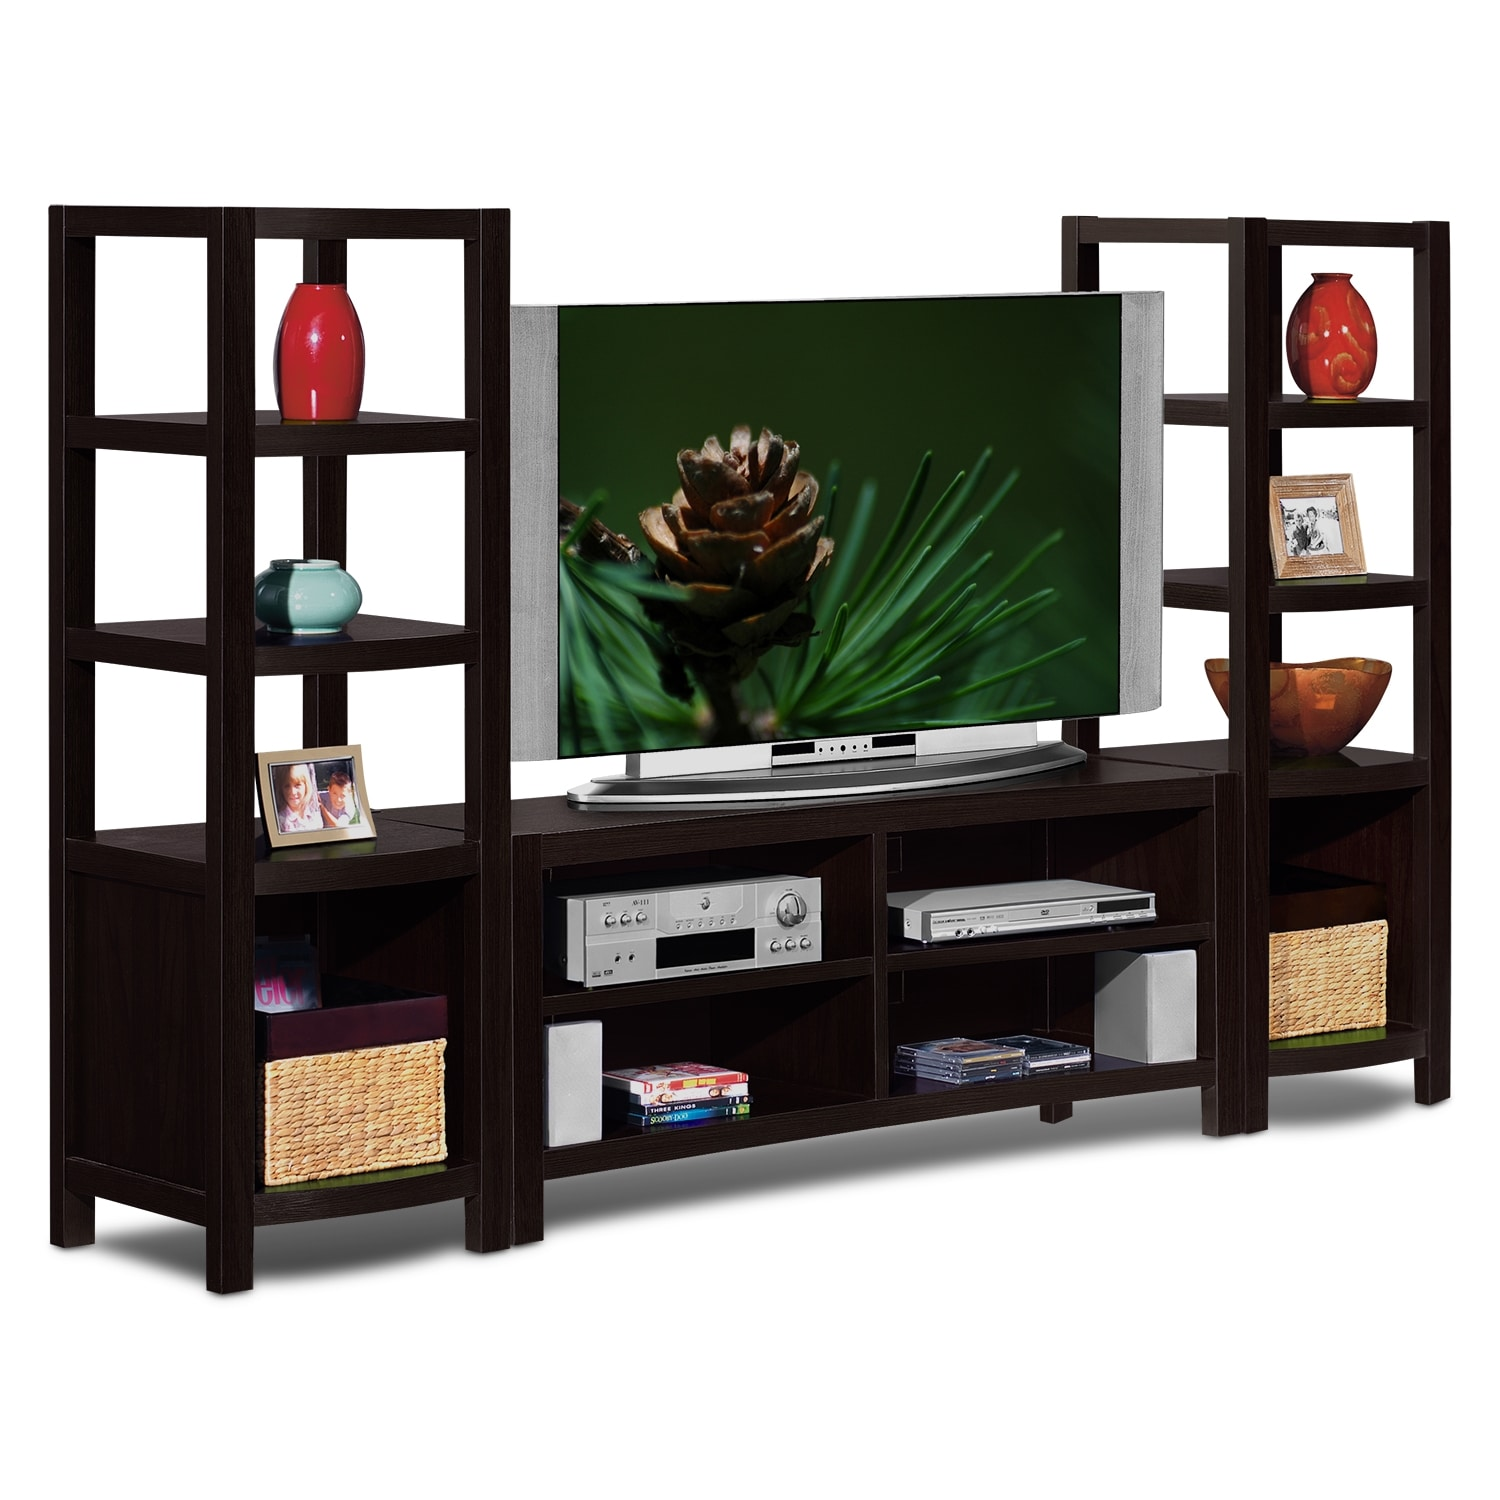 Entertainment Furniture - Keene 3 Pc. Entertainment Wall Unit